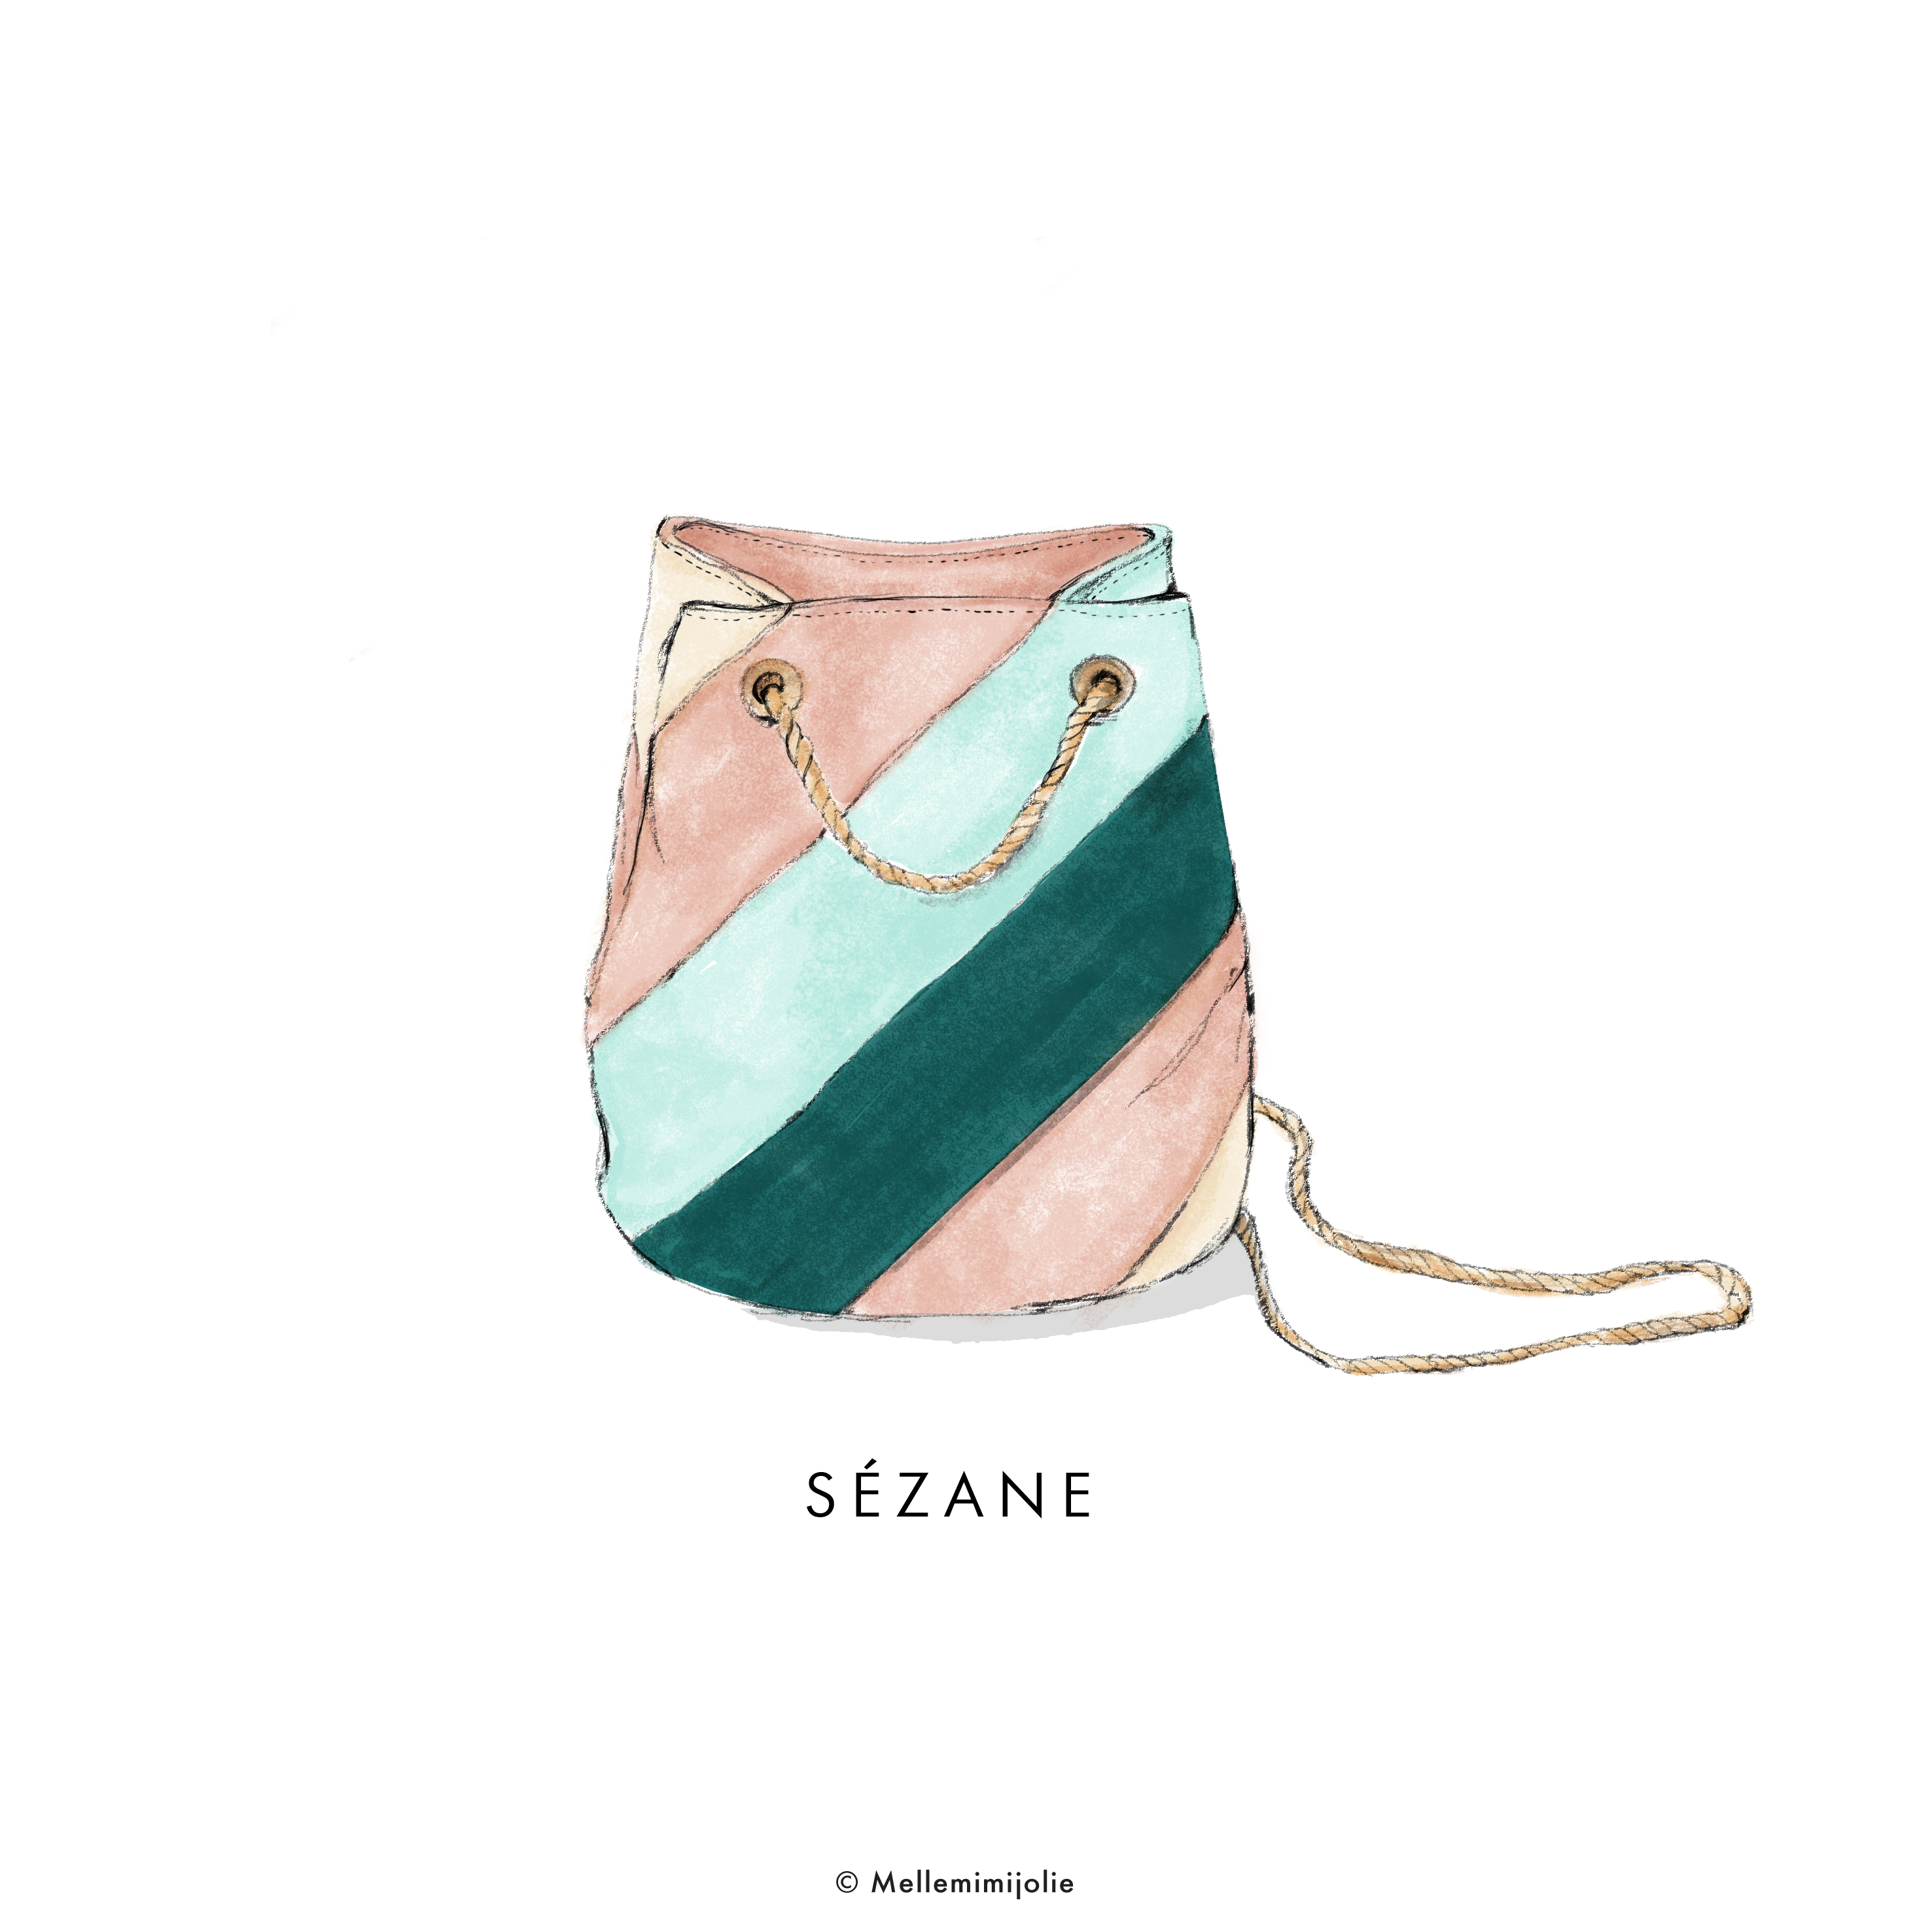 SEZANE BAG